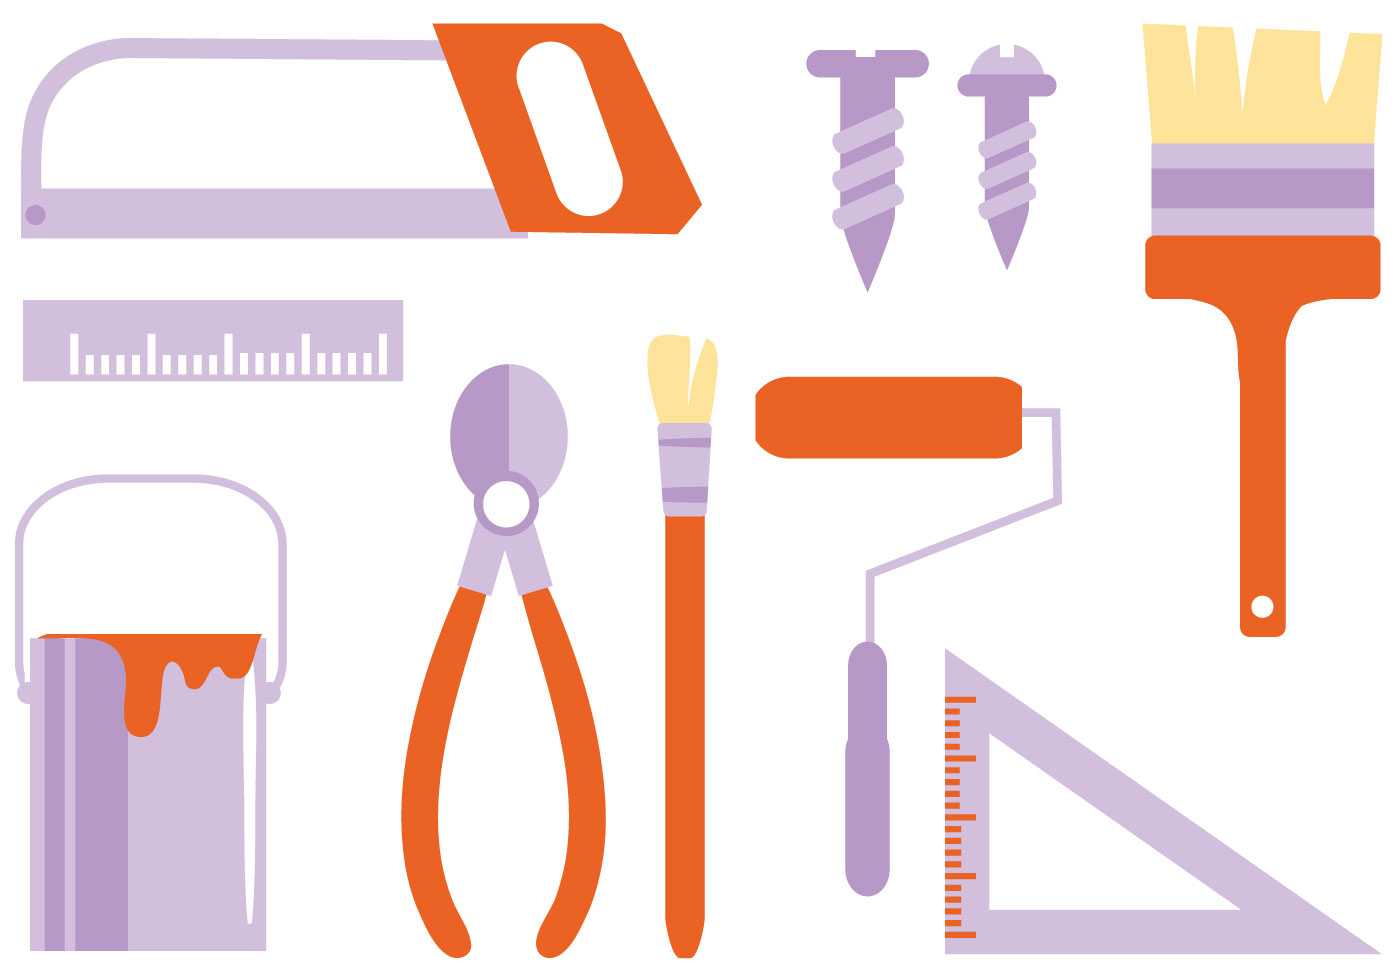 Free bricolage 2 vectors download free vector art stock - Clipart bricolage ...